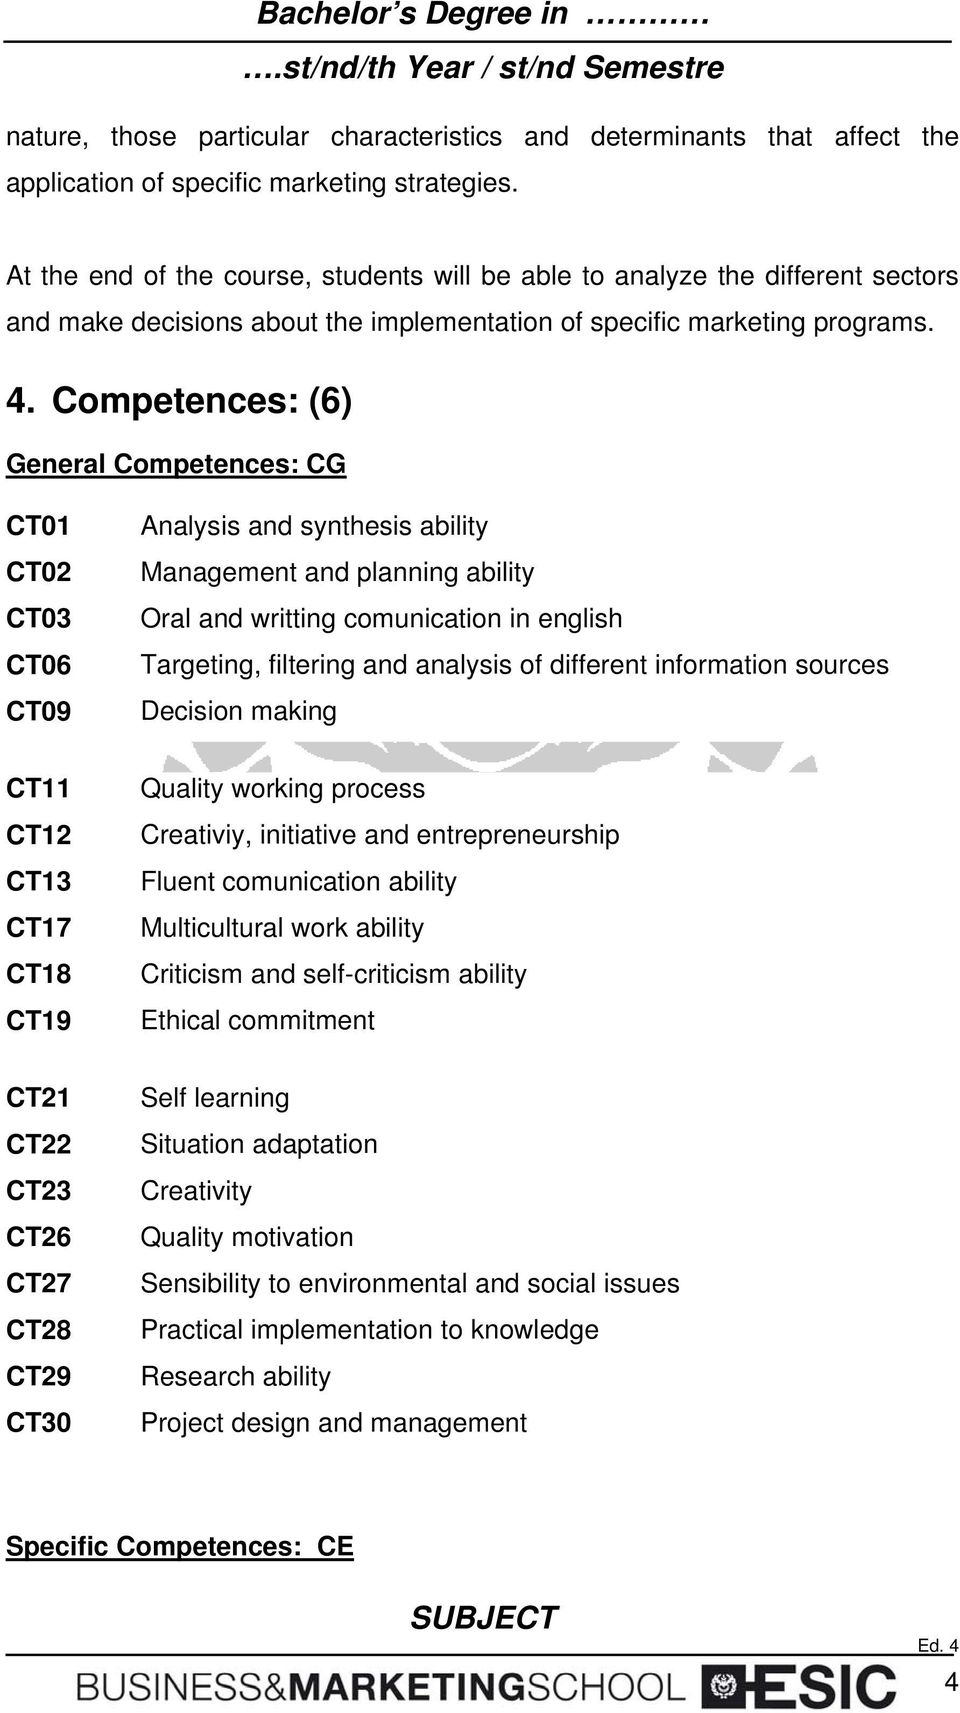 Competences: (6) General Competences: CG CT01 CT02 CT03 CT06 CT09 Analysis and synthesis ability Management and planning ability Oral and writting comunication in english Targeting, filtering and